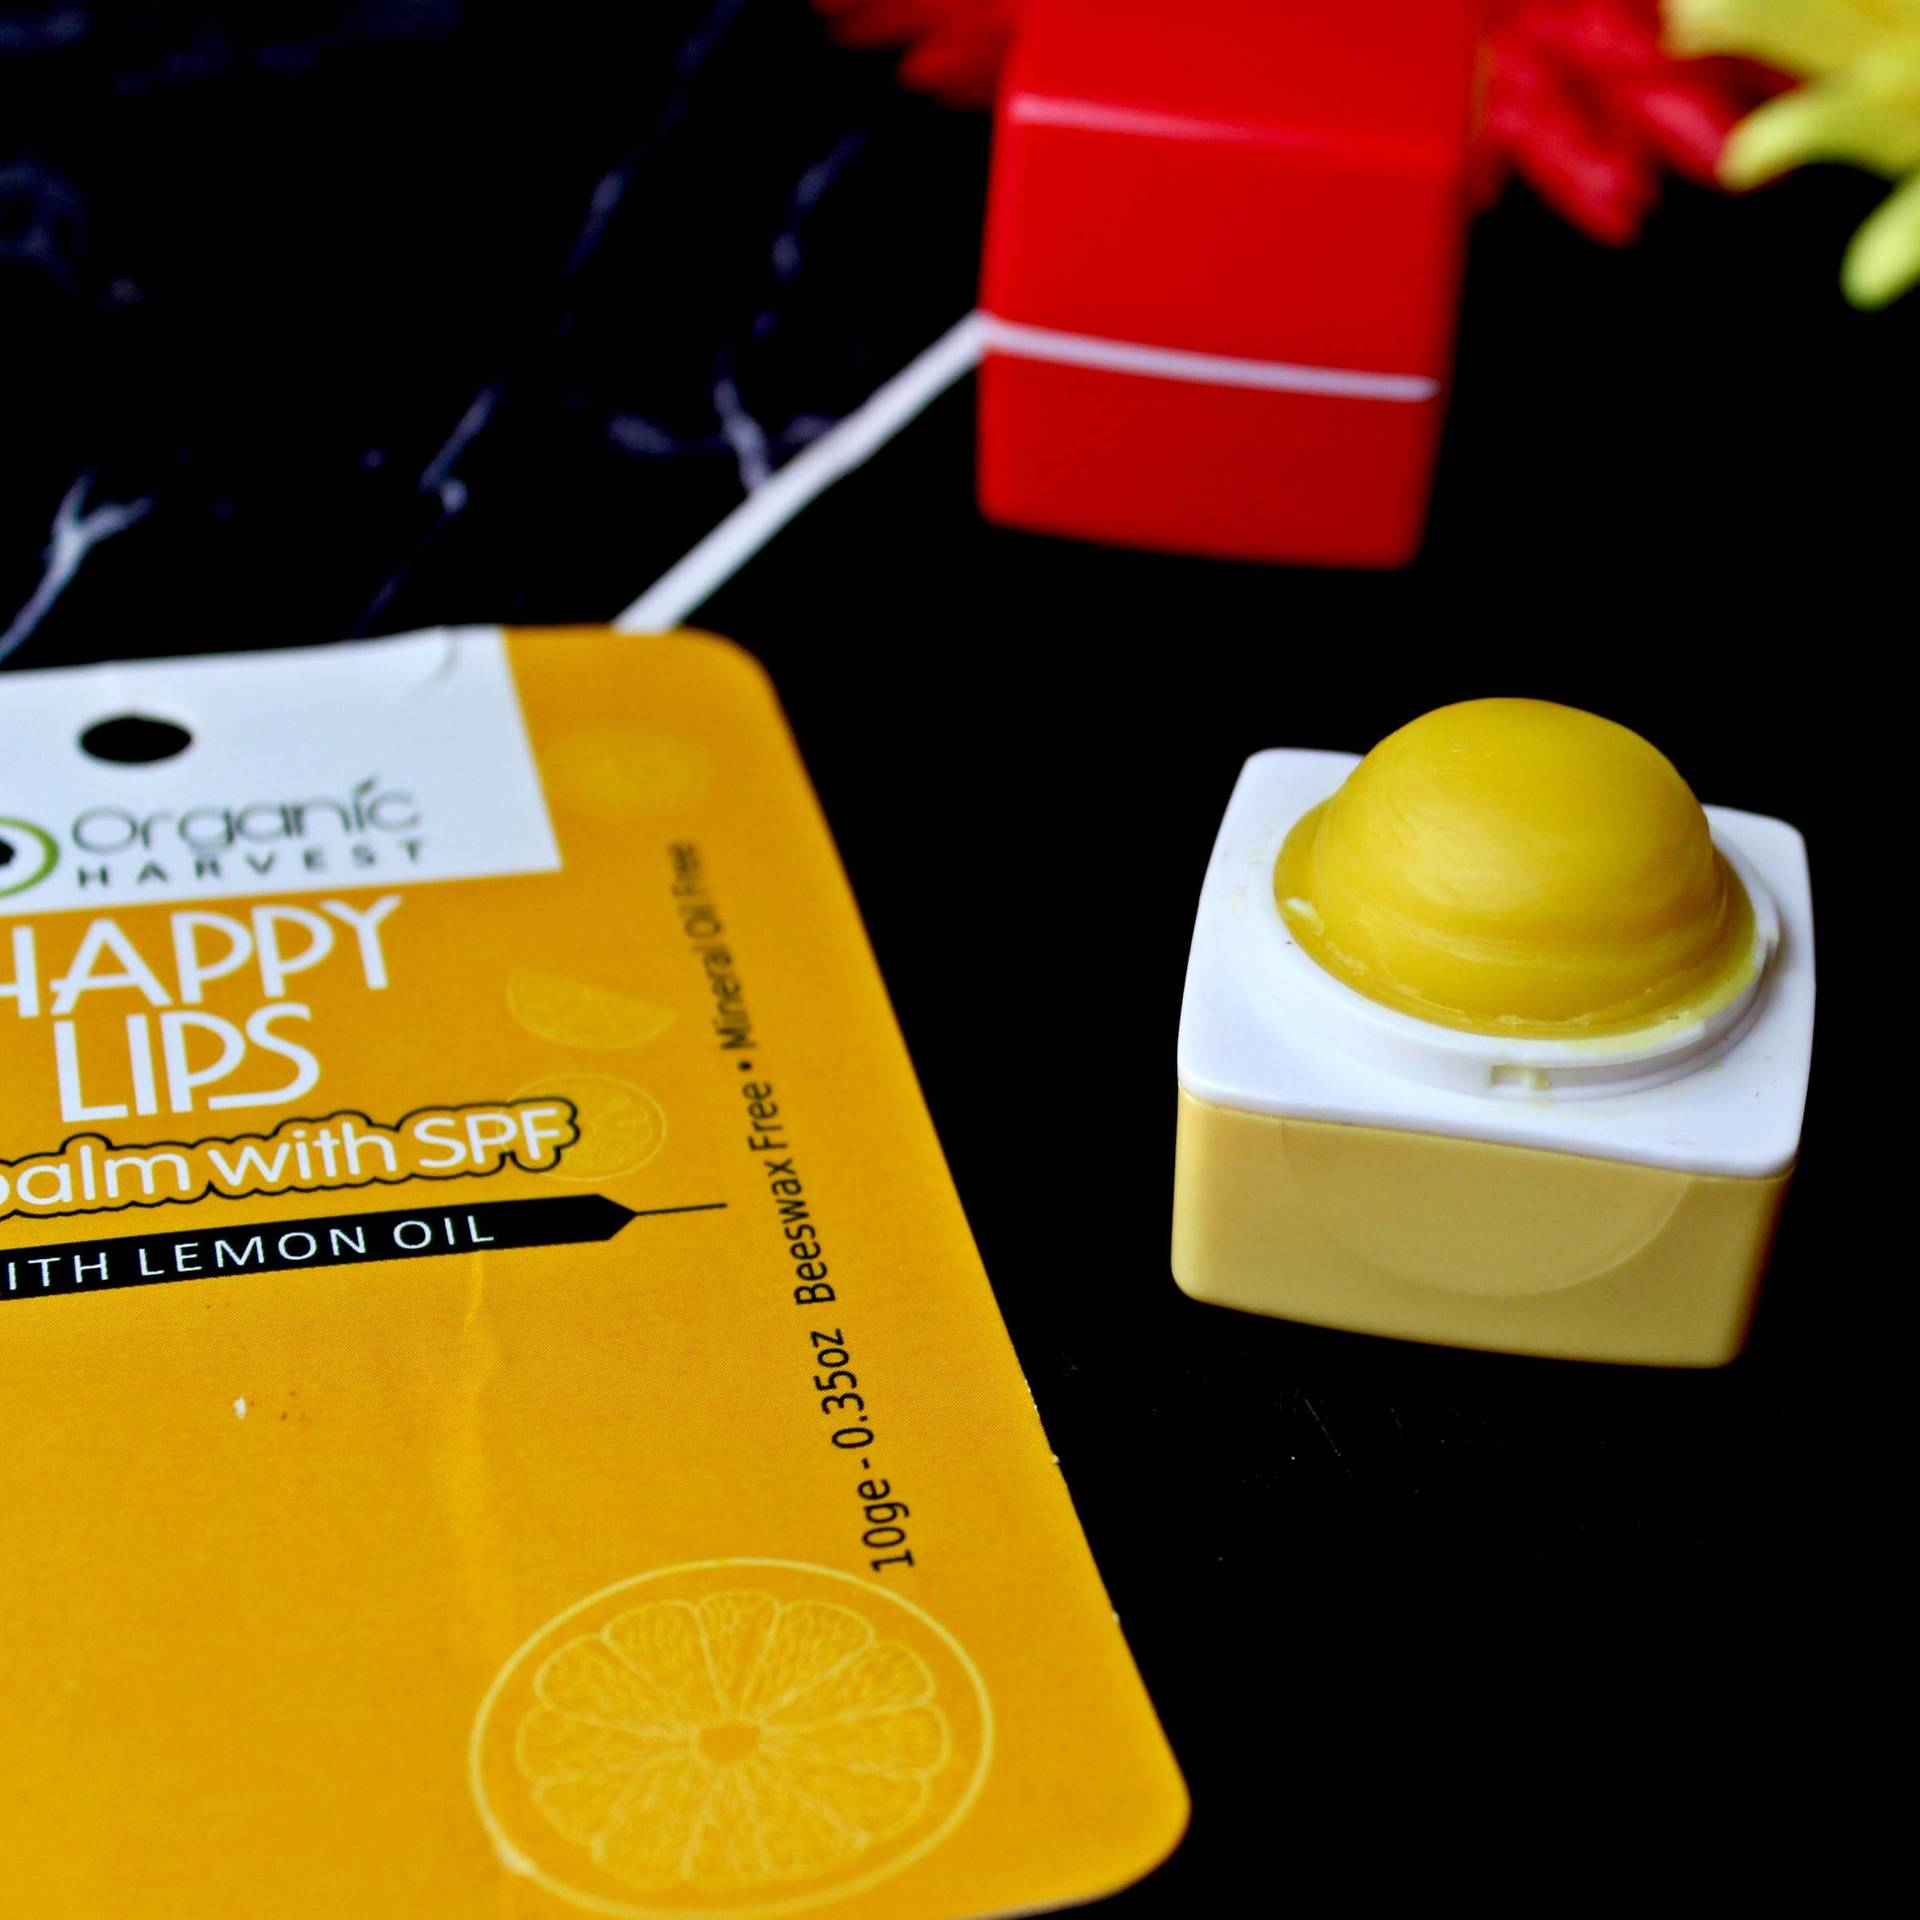 IshtyleAwhile - Organic Harvest Happy Lips_Lip Balm